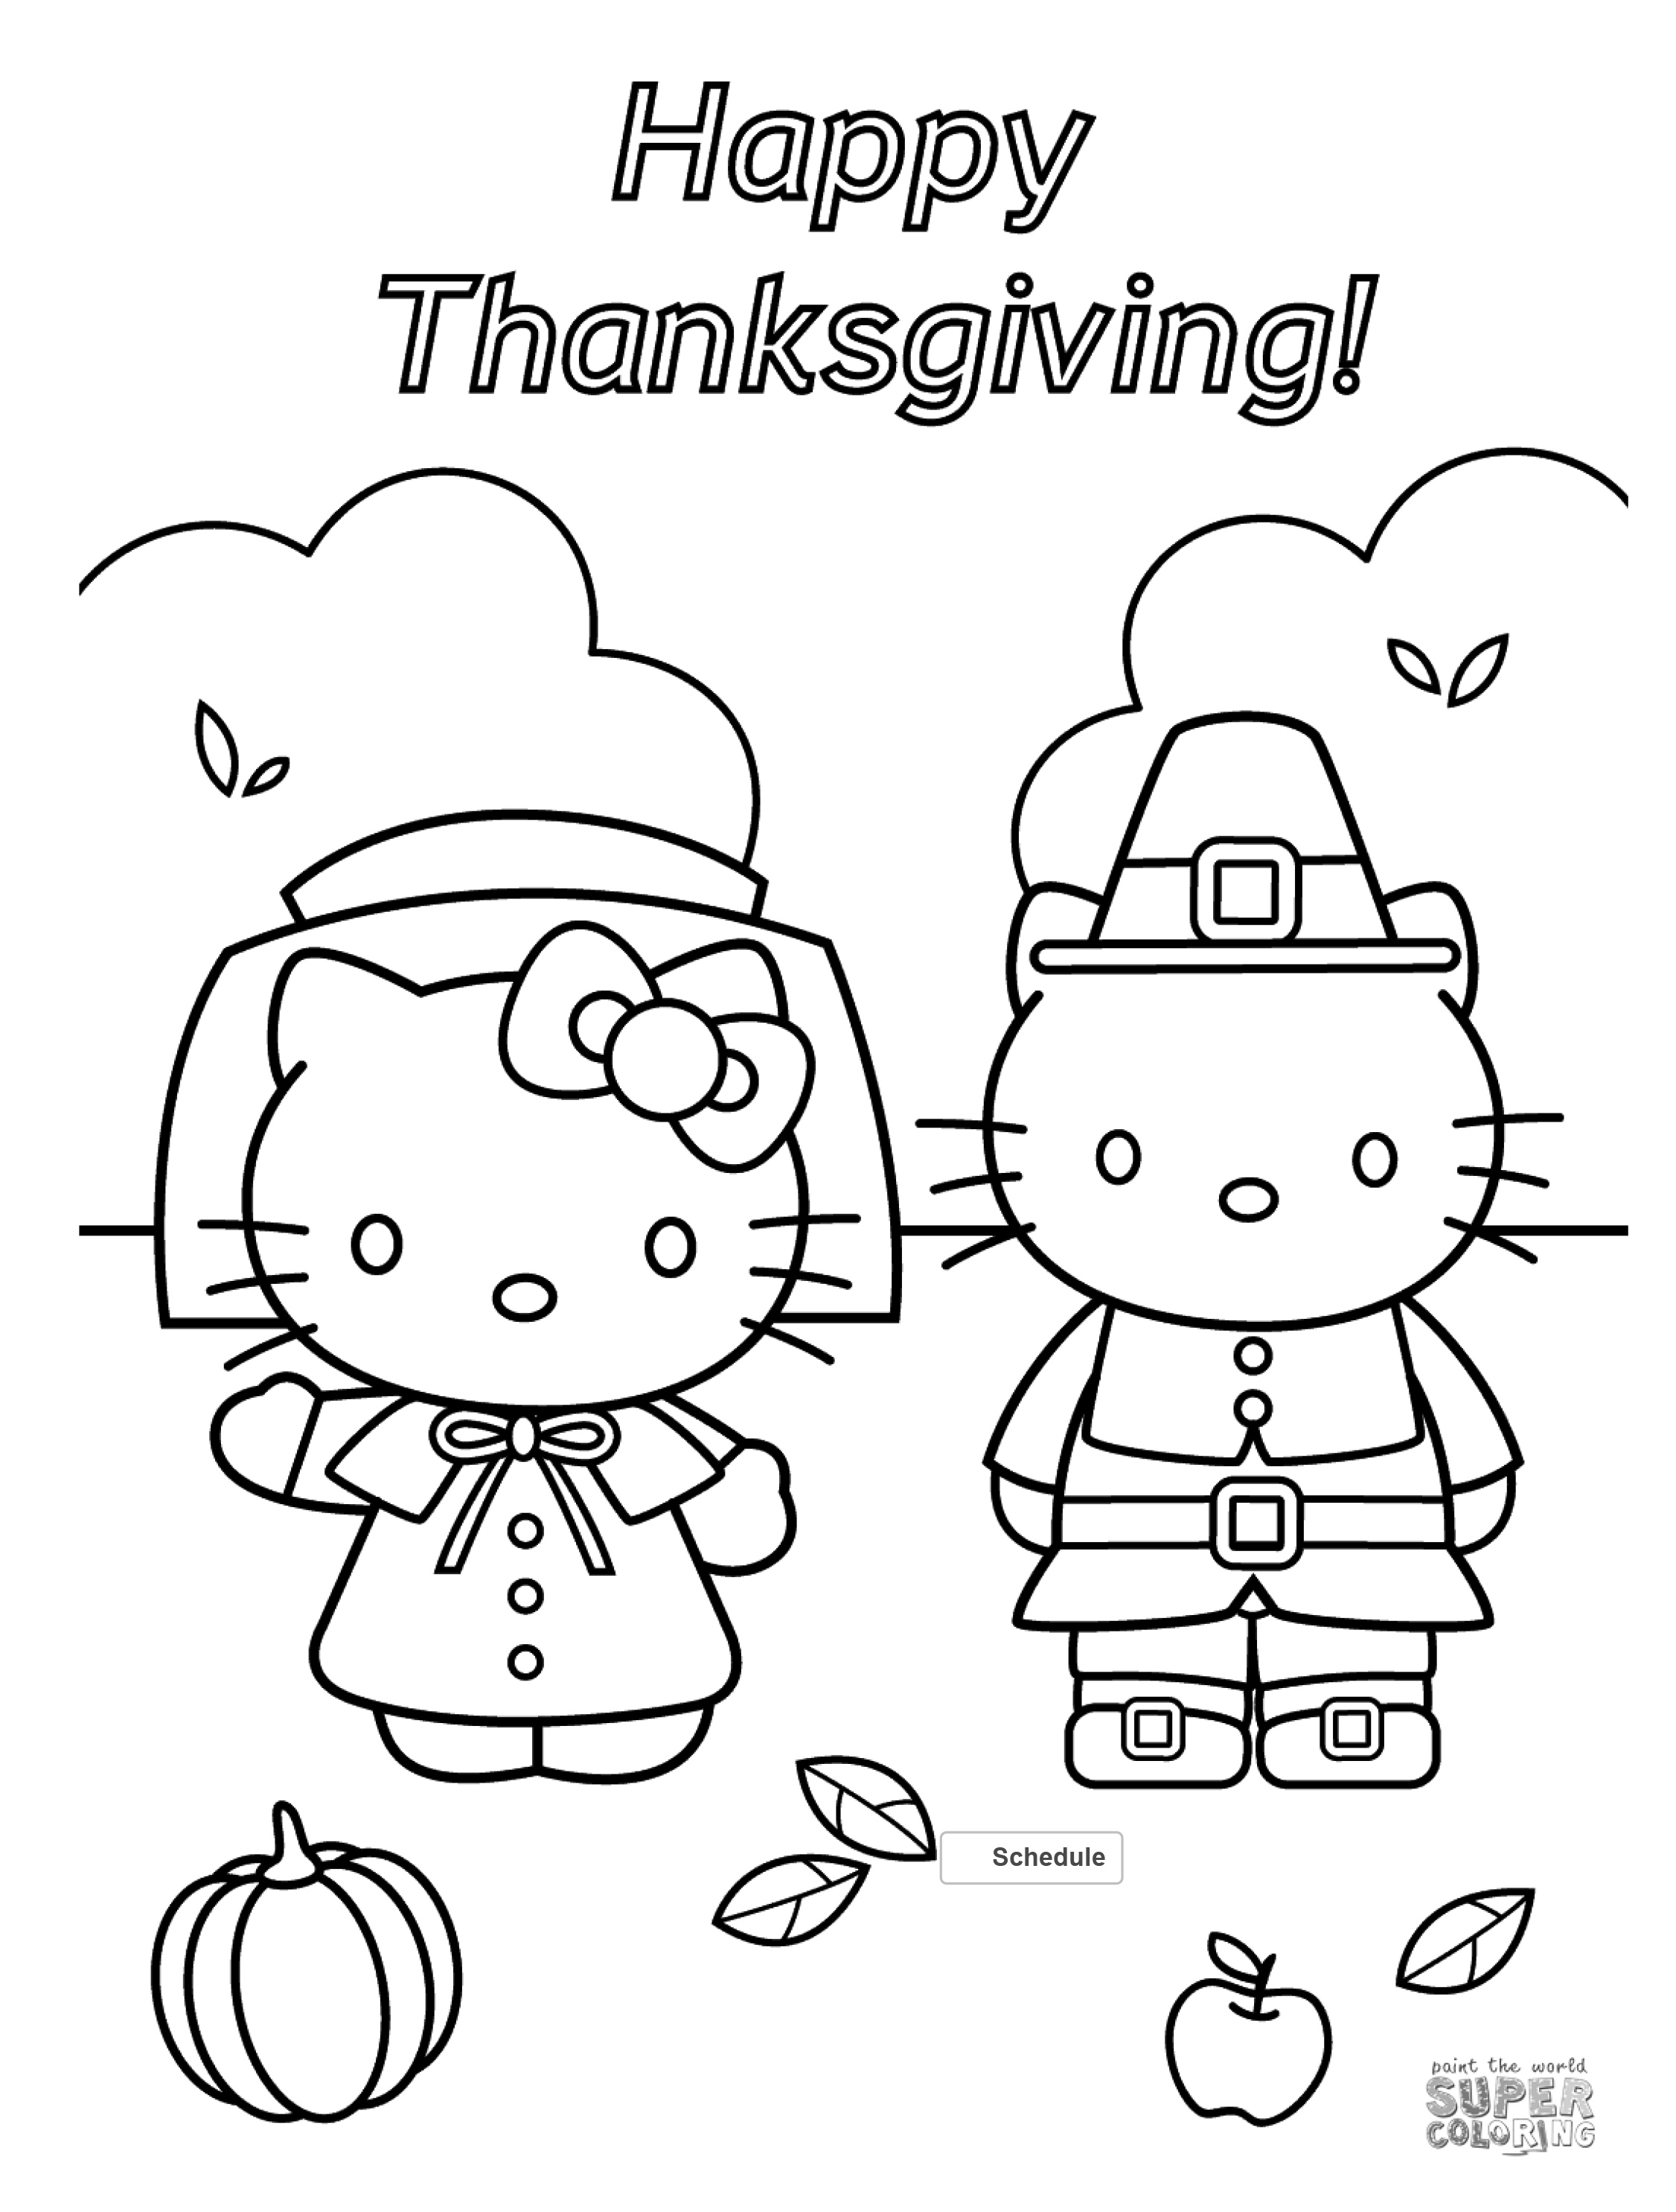 Free Thanksgiving Coloring Pages For Adults Amp Kids